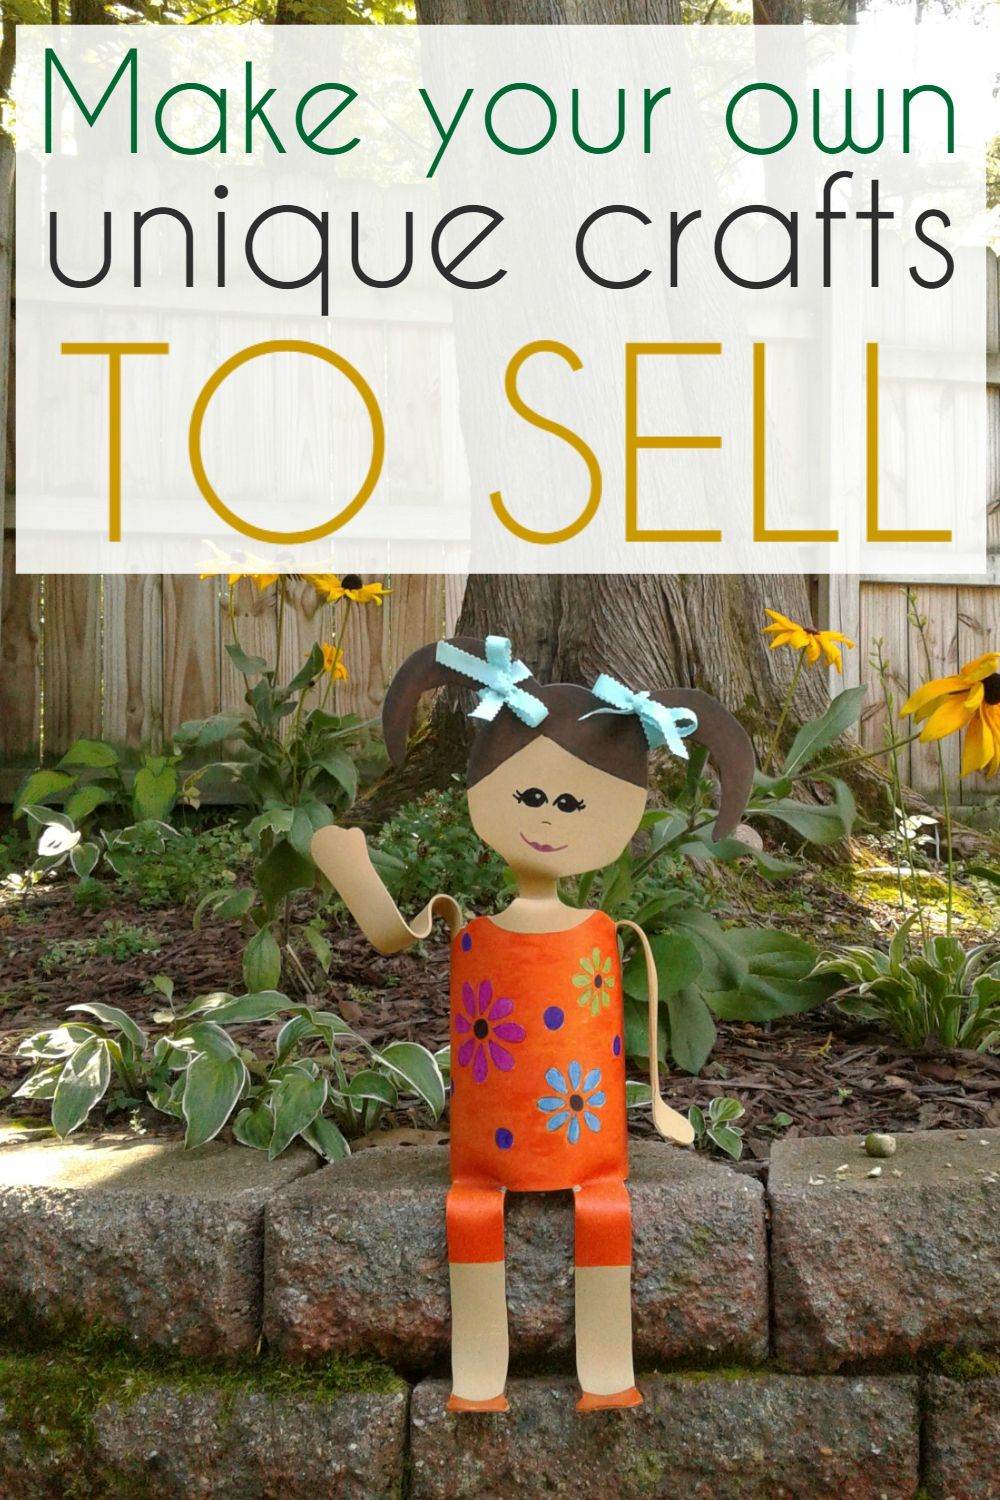 Unique crafts that you can make and sell from home